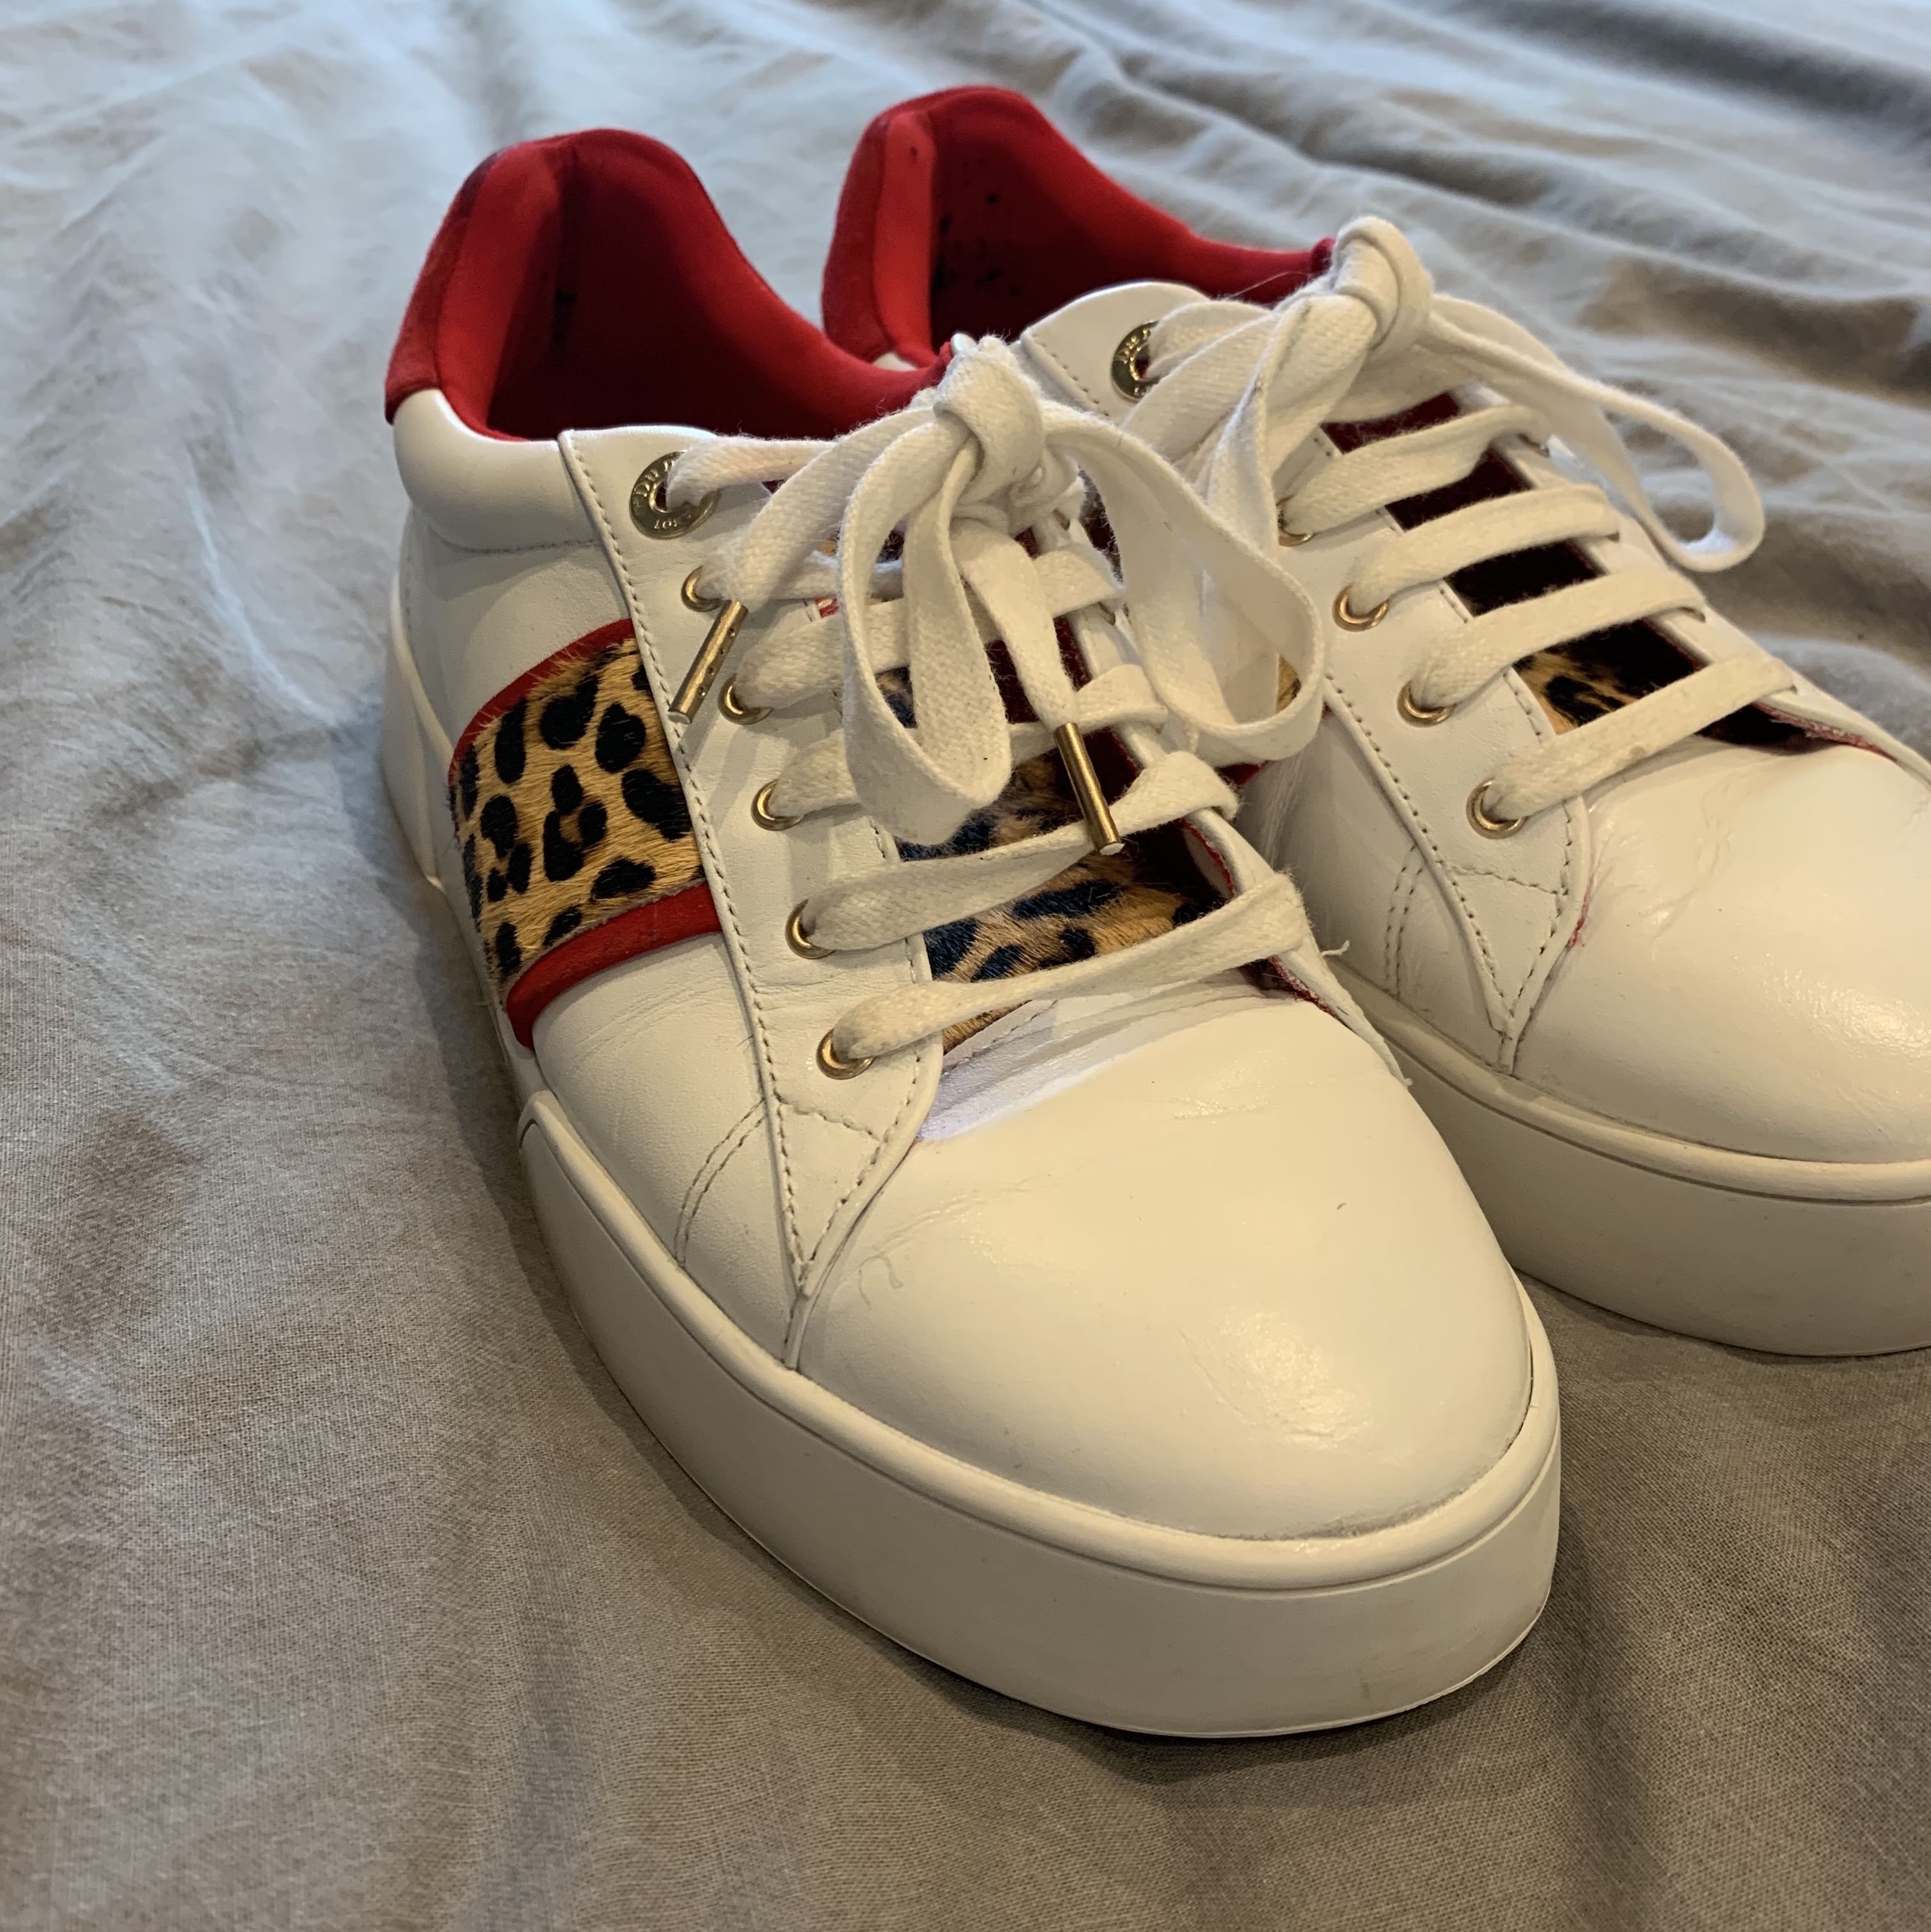 Dune white trainers with leopard print